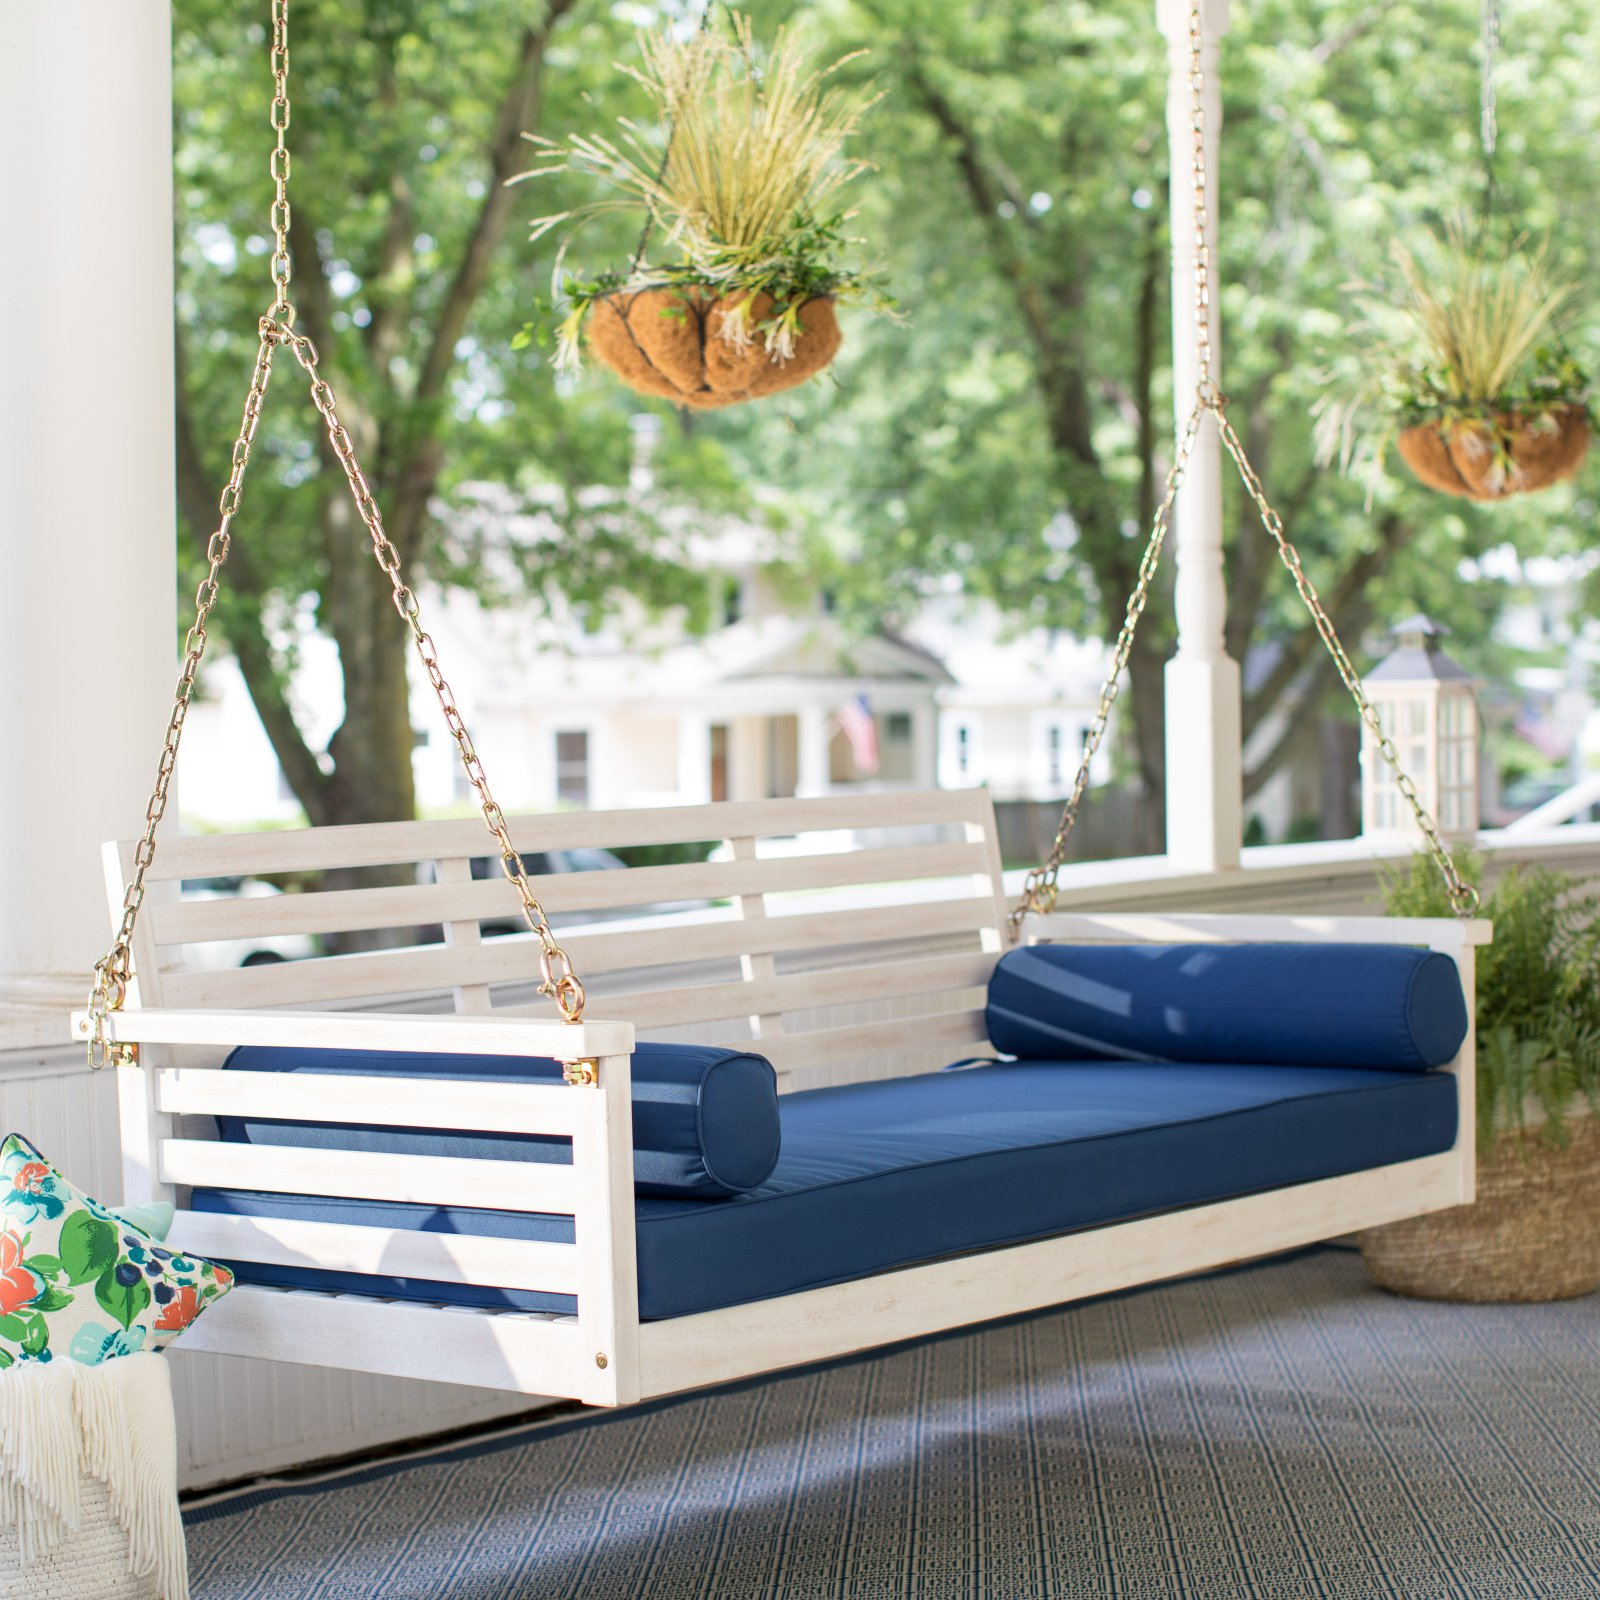 Most Popular Belham Living Brighton Beach Deep Seating Porch Swing Bed Intended For Nautical Porch Swings (View 9 of 30)